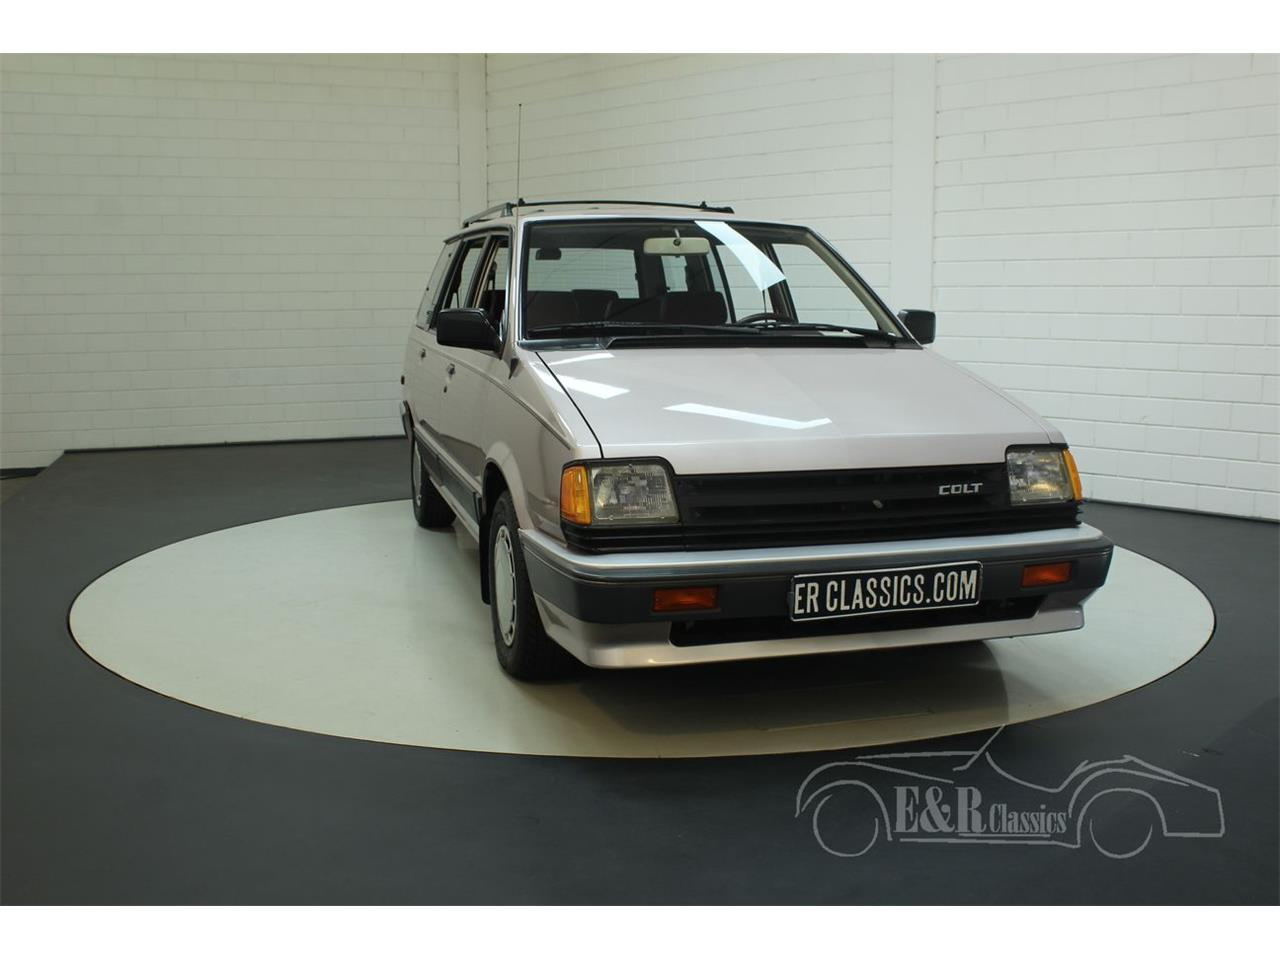 Large Picture of '87 Dodge Colt located in Waalwijk [nl] Pays-Bas - PVV4